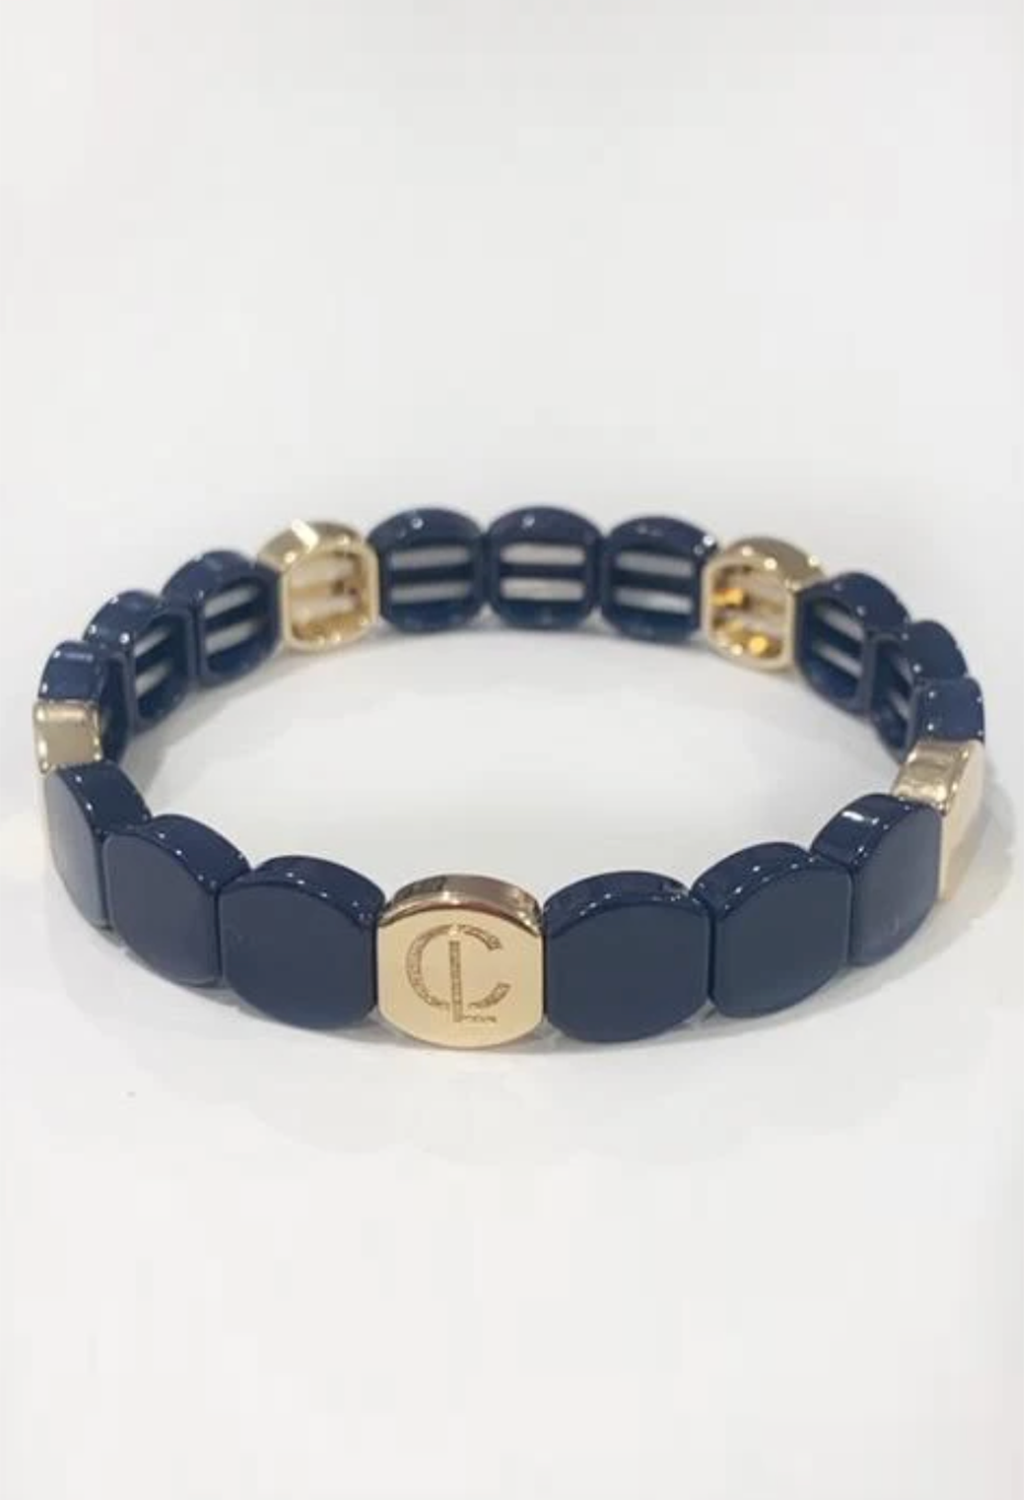 CL Round Tile Bead Bracelet, Navy/Gold